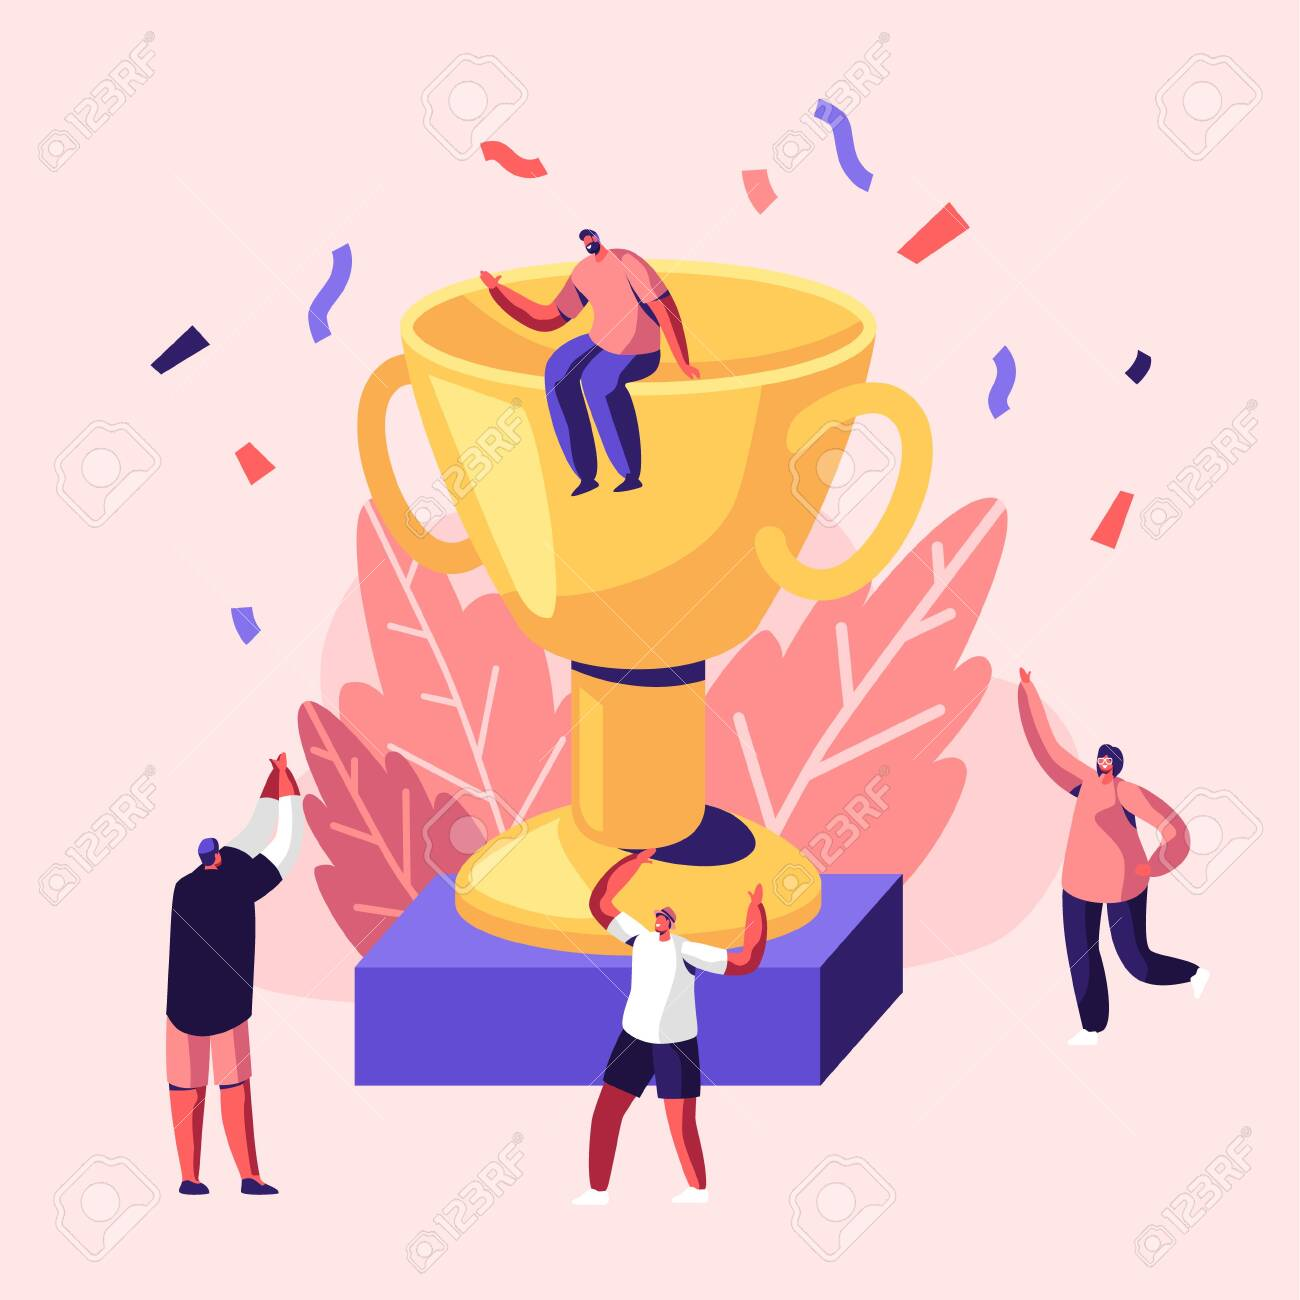 Cheerful People Celebrating Win Laughing with Hands Up around of Huge Gold Cup with Man Sitting on Top. Joyful Colleagues, Employees Rejoice for New Project, Success. Cartoon Flat Vector Illustration - 124052434